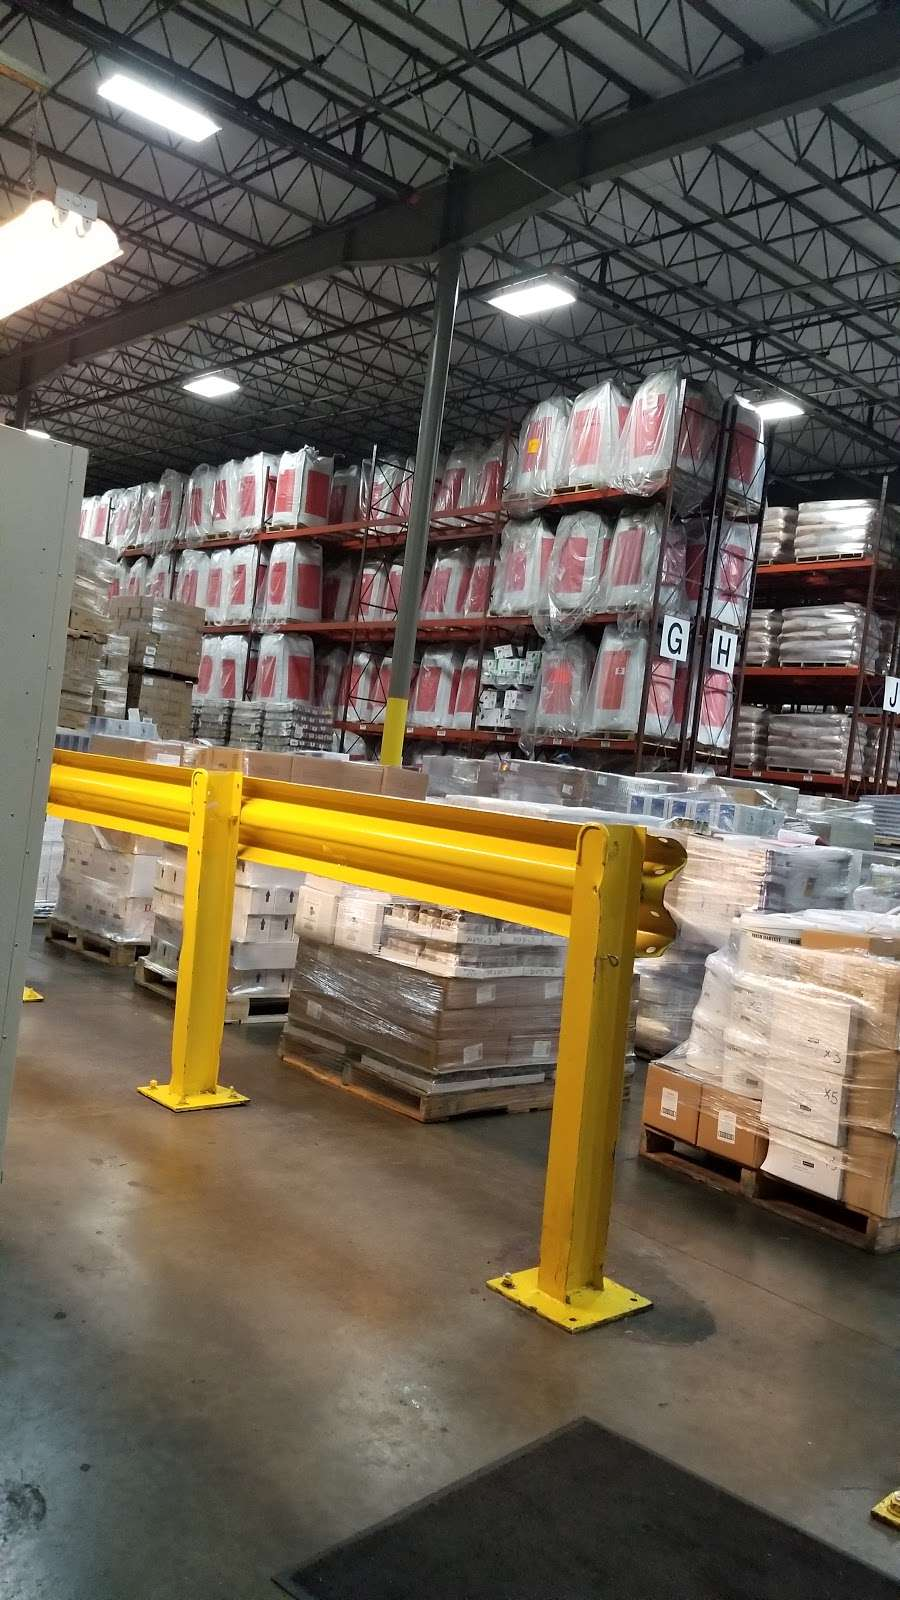 East Coast Warehouse & Distribution - moving company  | Photo 7 of 10 | Address: 1150 Polaris St, Elizabeth, NJ 07201, USA | Phone: (908) 351-2800